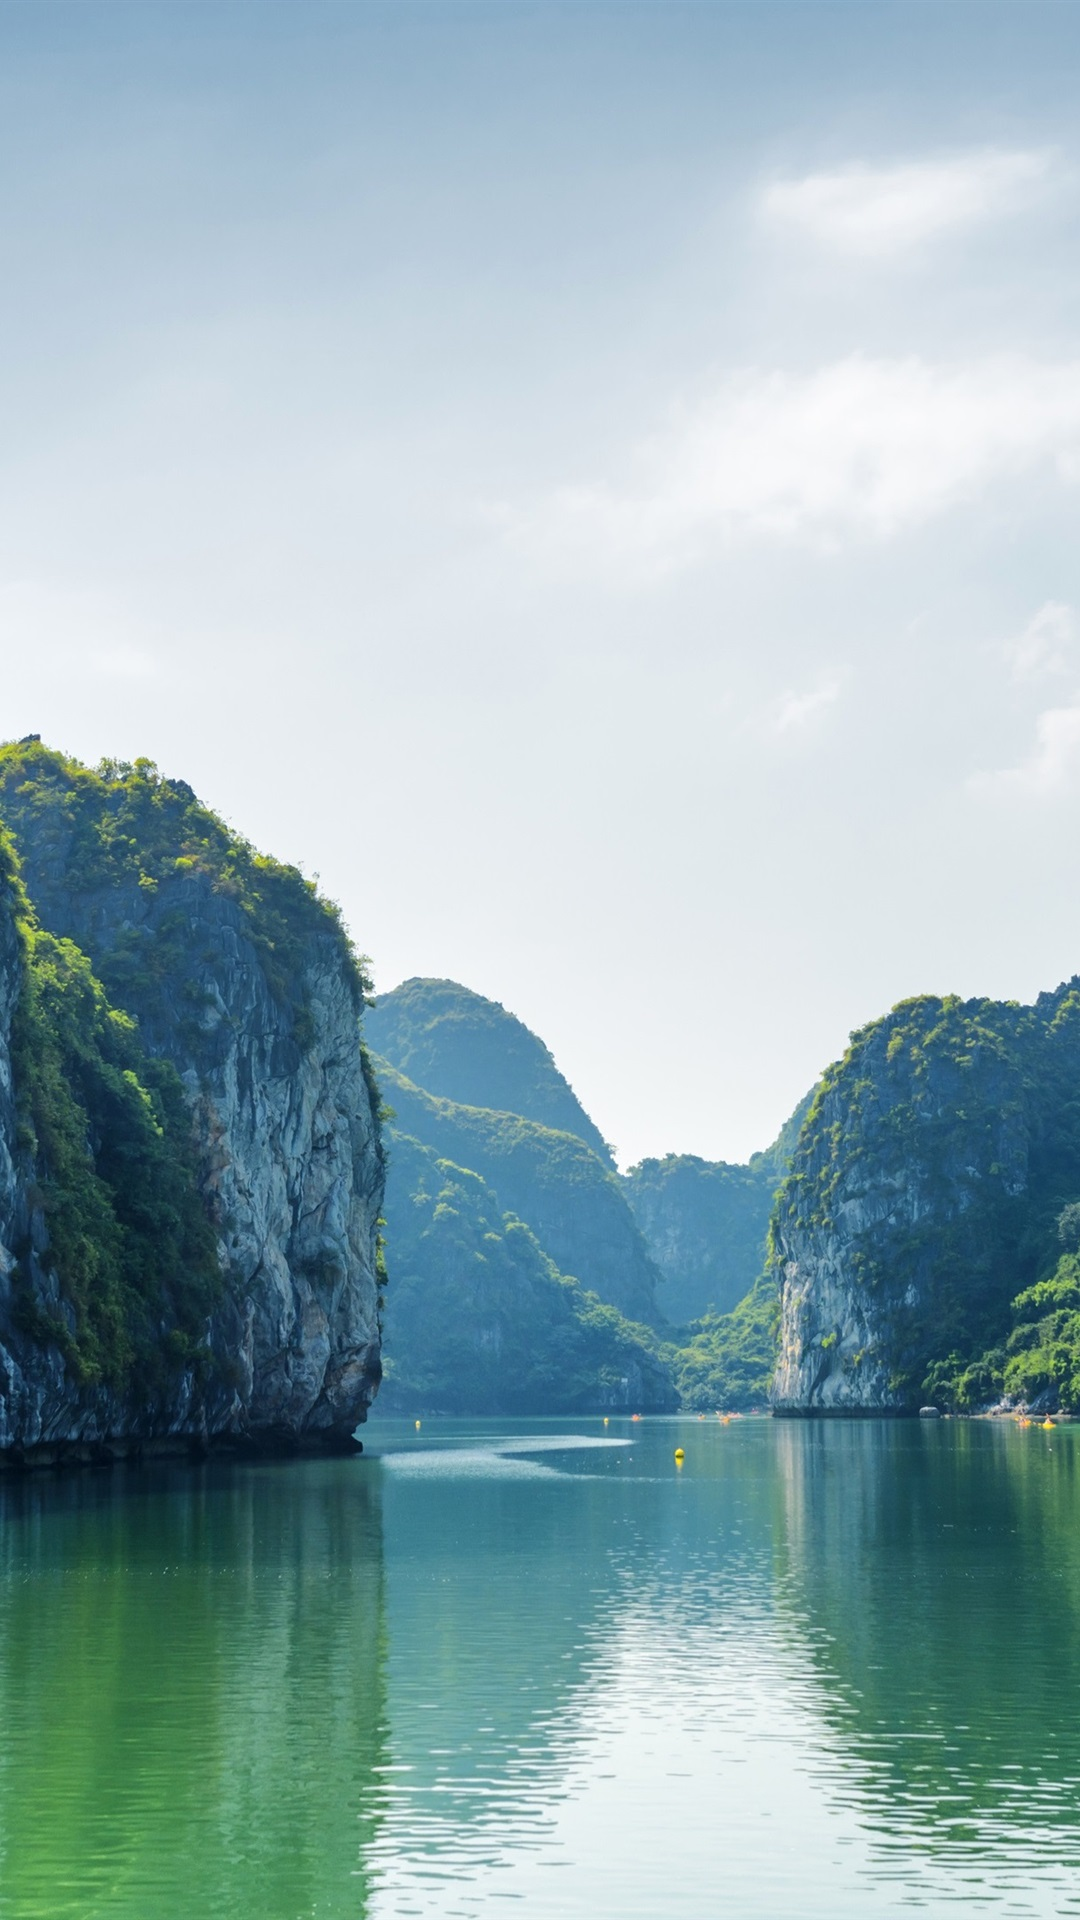 Wallpaper Vietnam, Halong Bay, sea, mountains, clouds, boat 3840x2160 UHD 4K Picture, Image